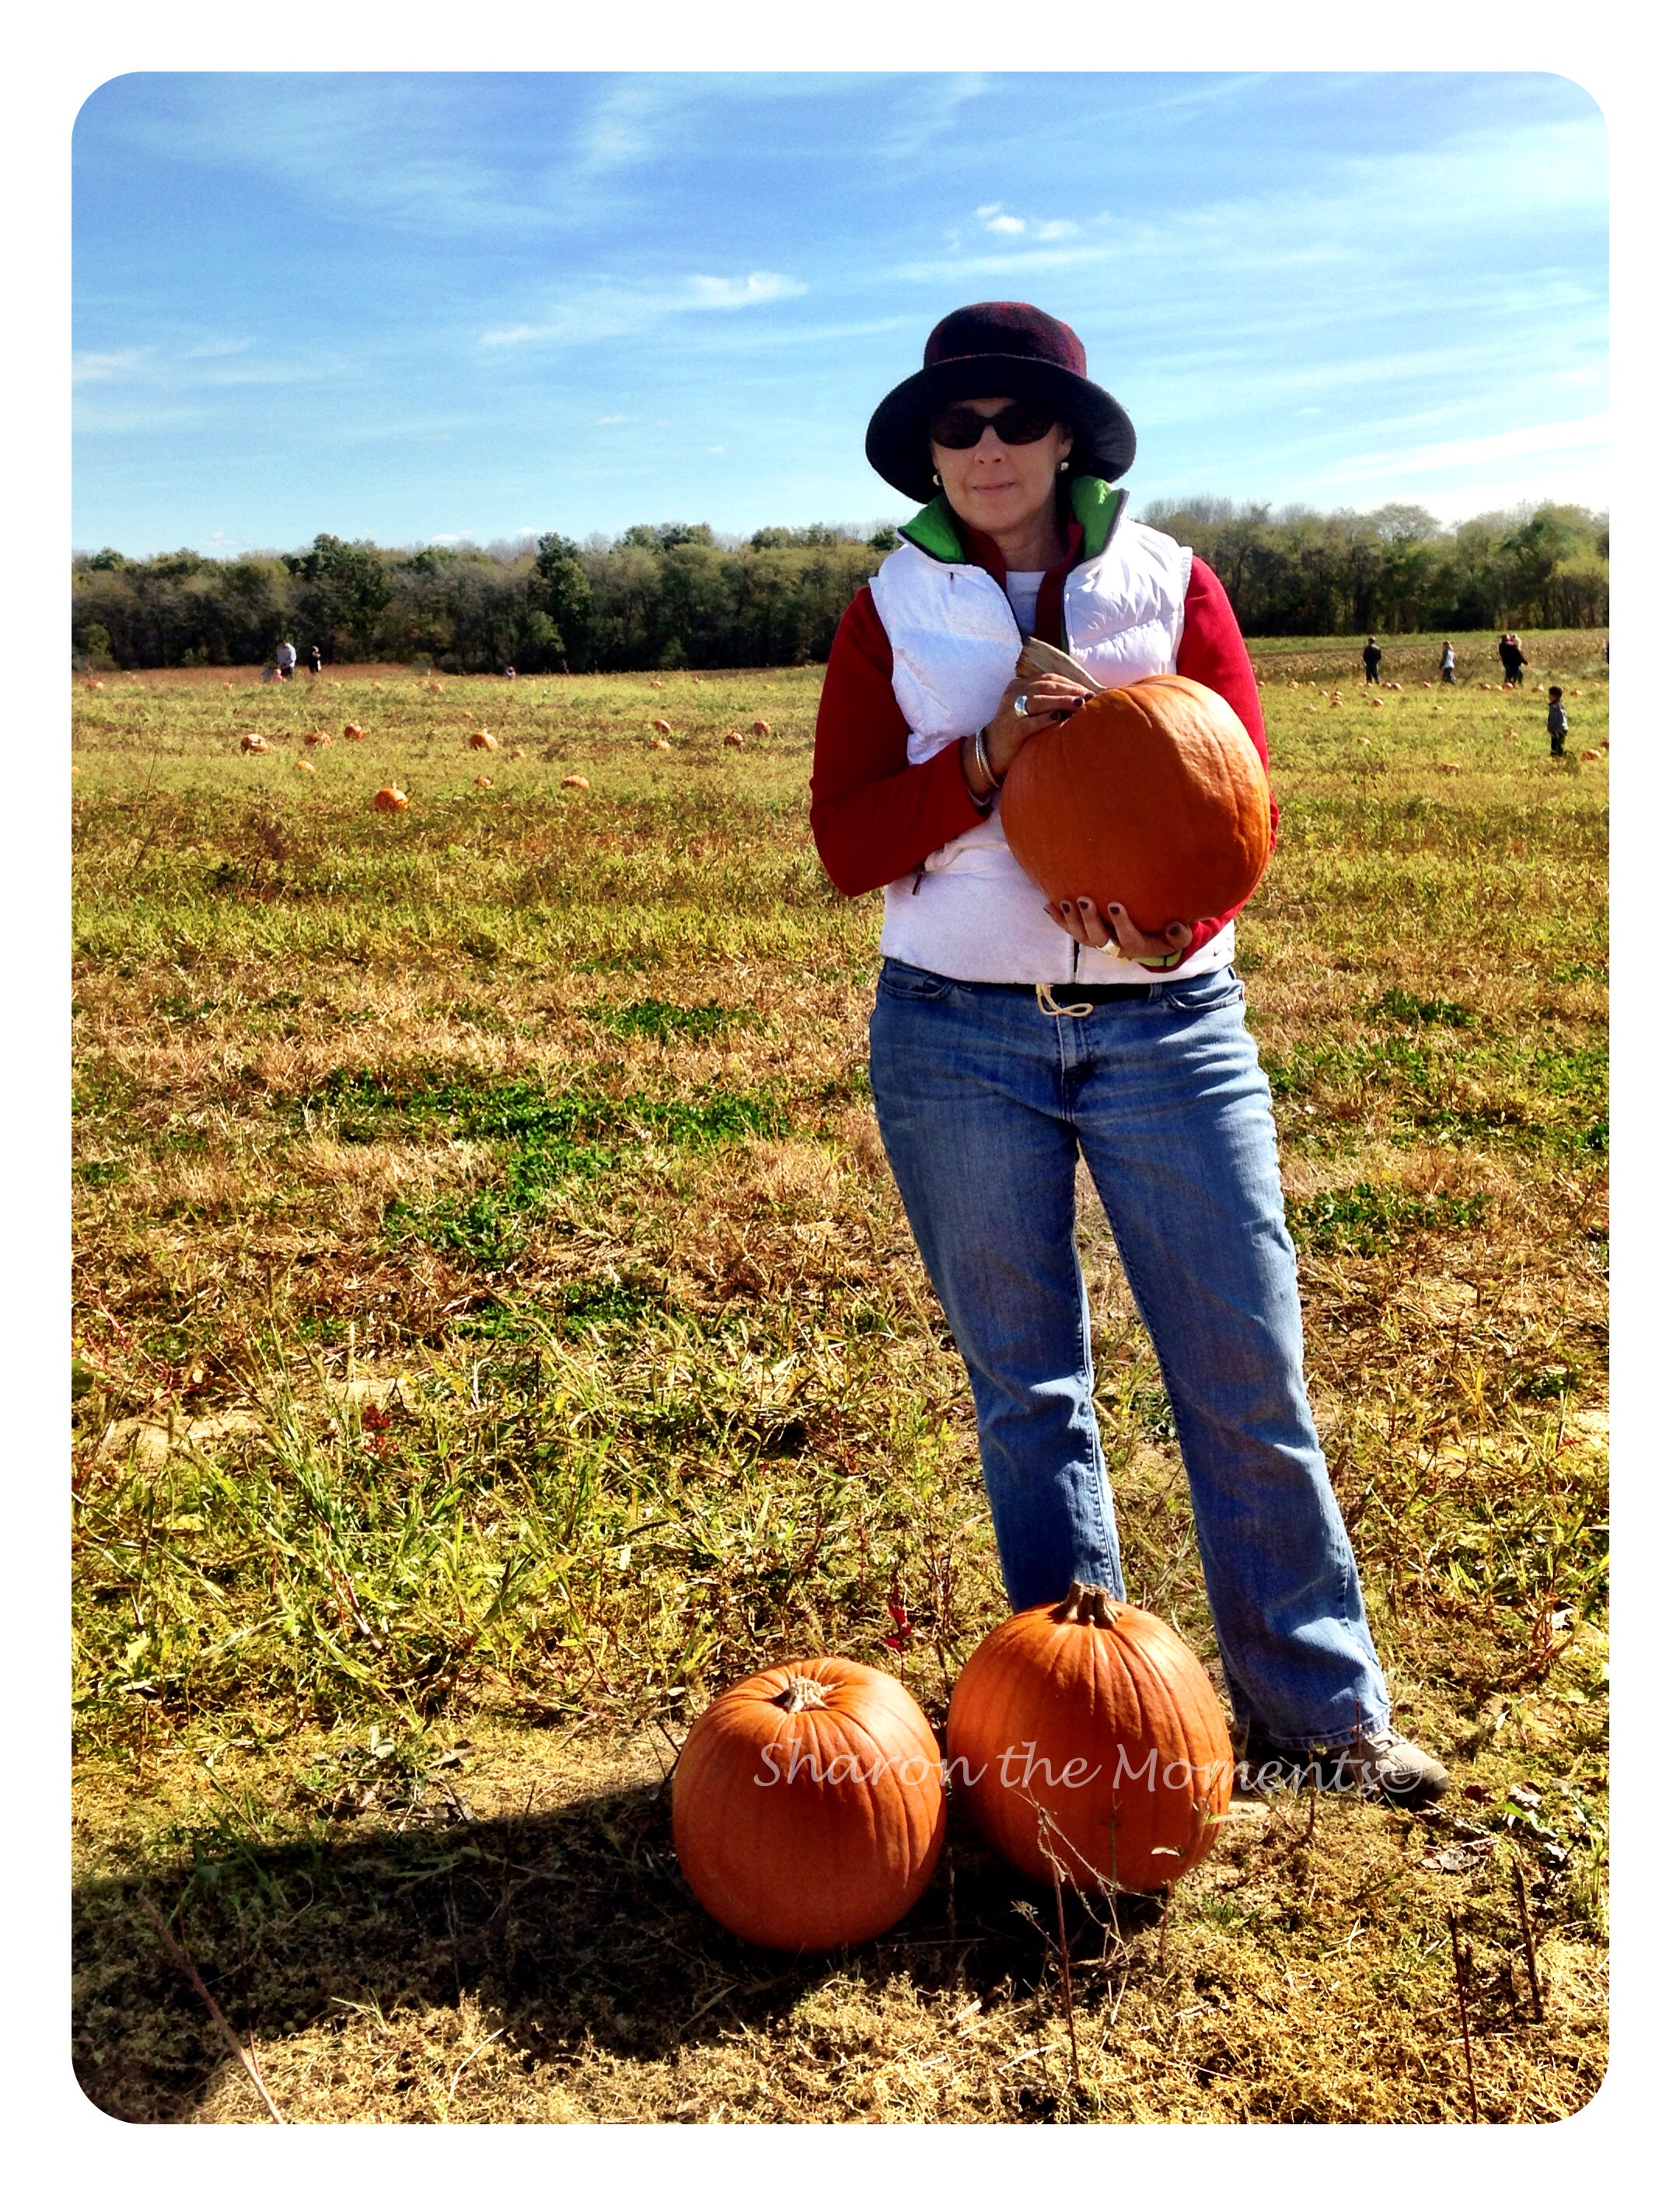 Pumpkin Patch Visit To Hidden Creek Farms|Sharon the Moments Blog